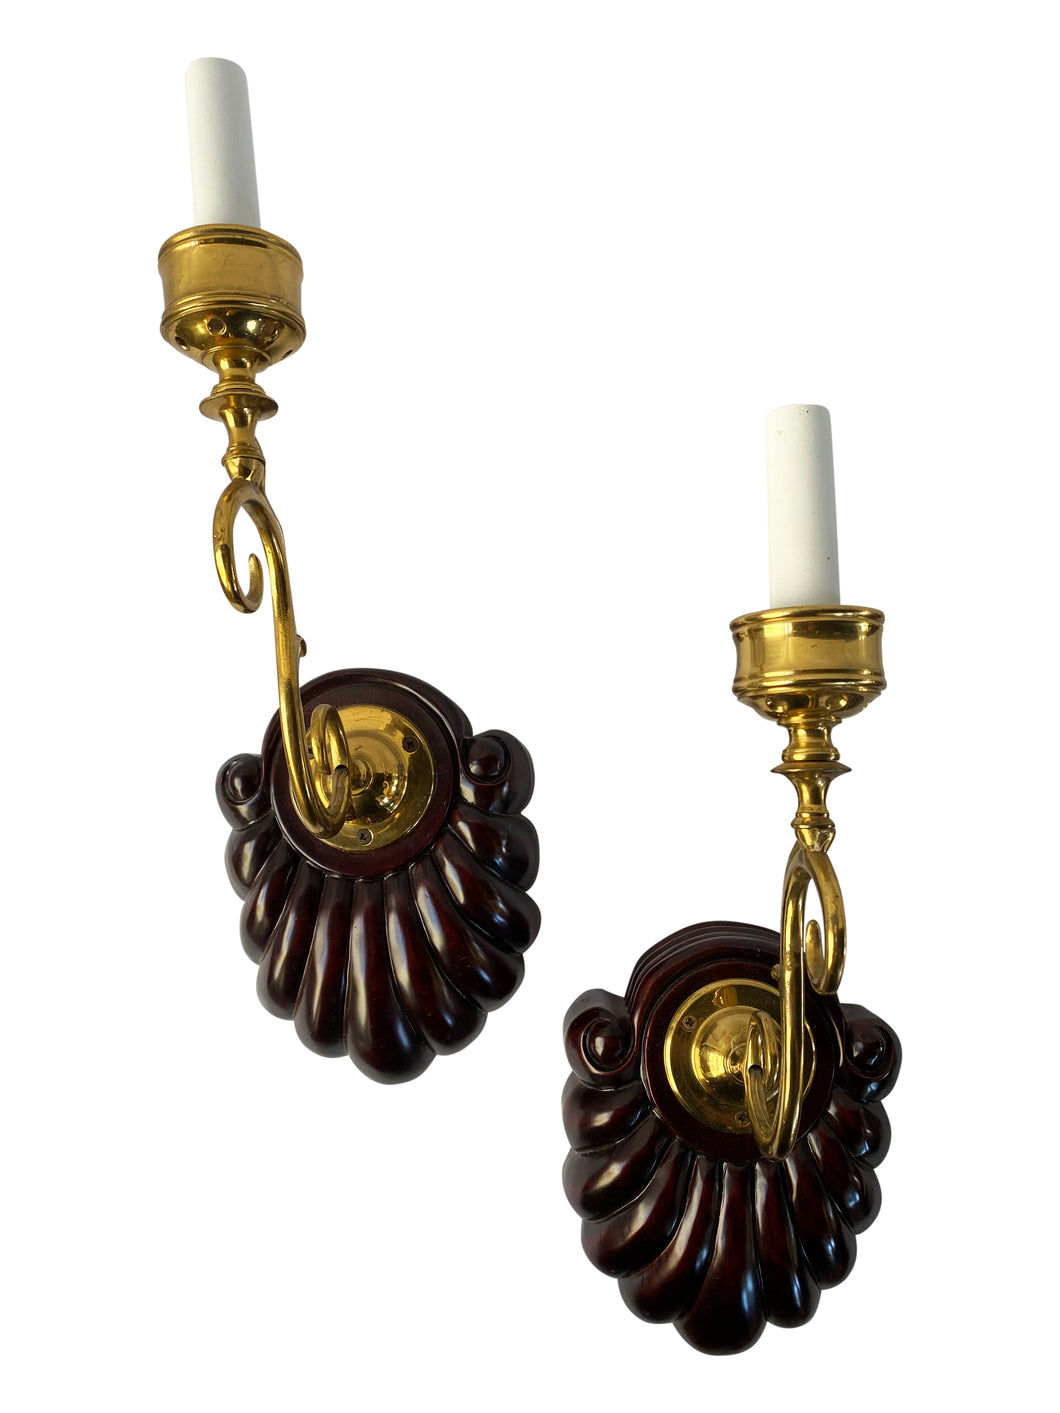 Vintage Hand Carved Wood and Brass Wall Sconces (Pair)